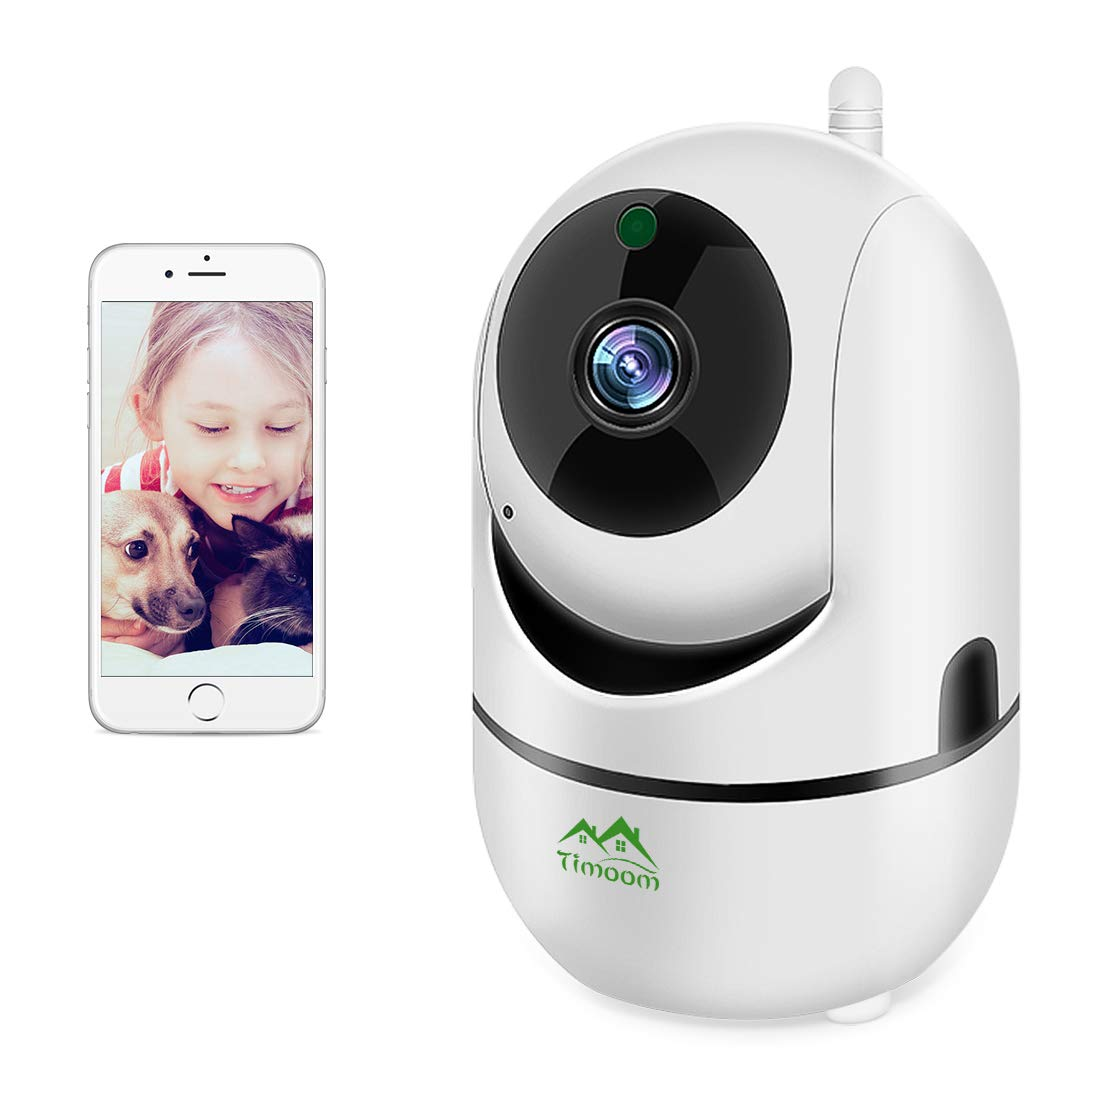 1080P HD WiFi IP Camera,Dome Home Security Surveillance Wireless Camera Pet Camera with Cloud Storage Two Way Audio Remote Viewing Pan/Tilt/Zoom Night Vision Motion Detect for Home/Shop/Office by Toronto Warehouse